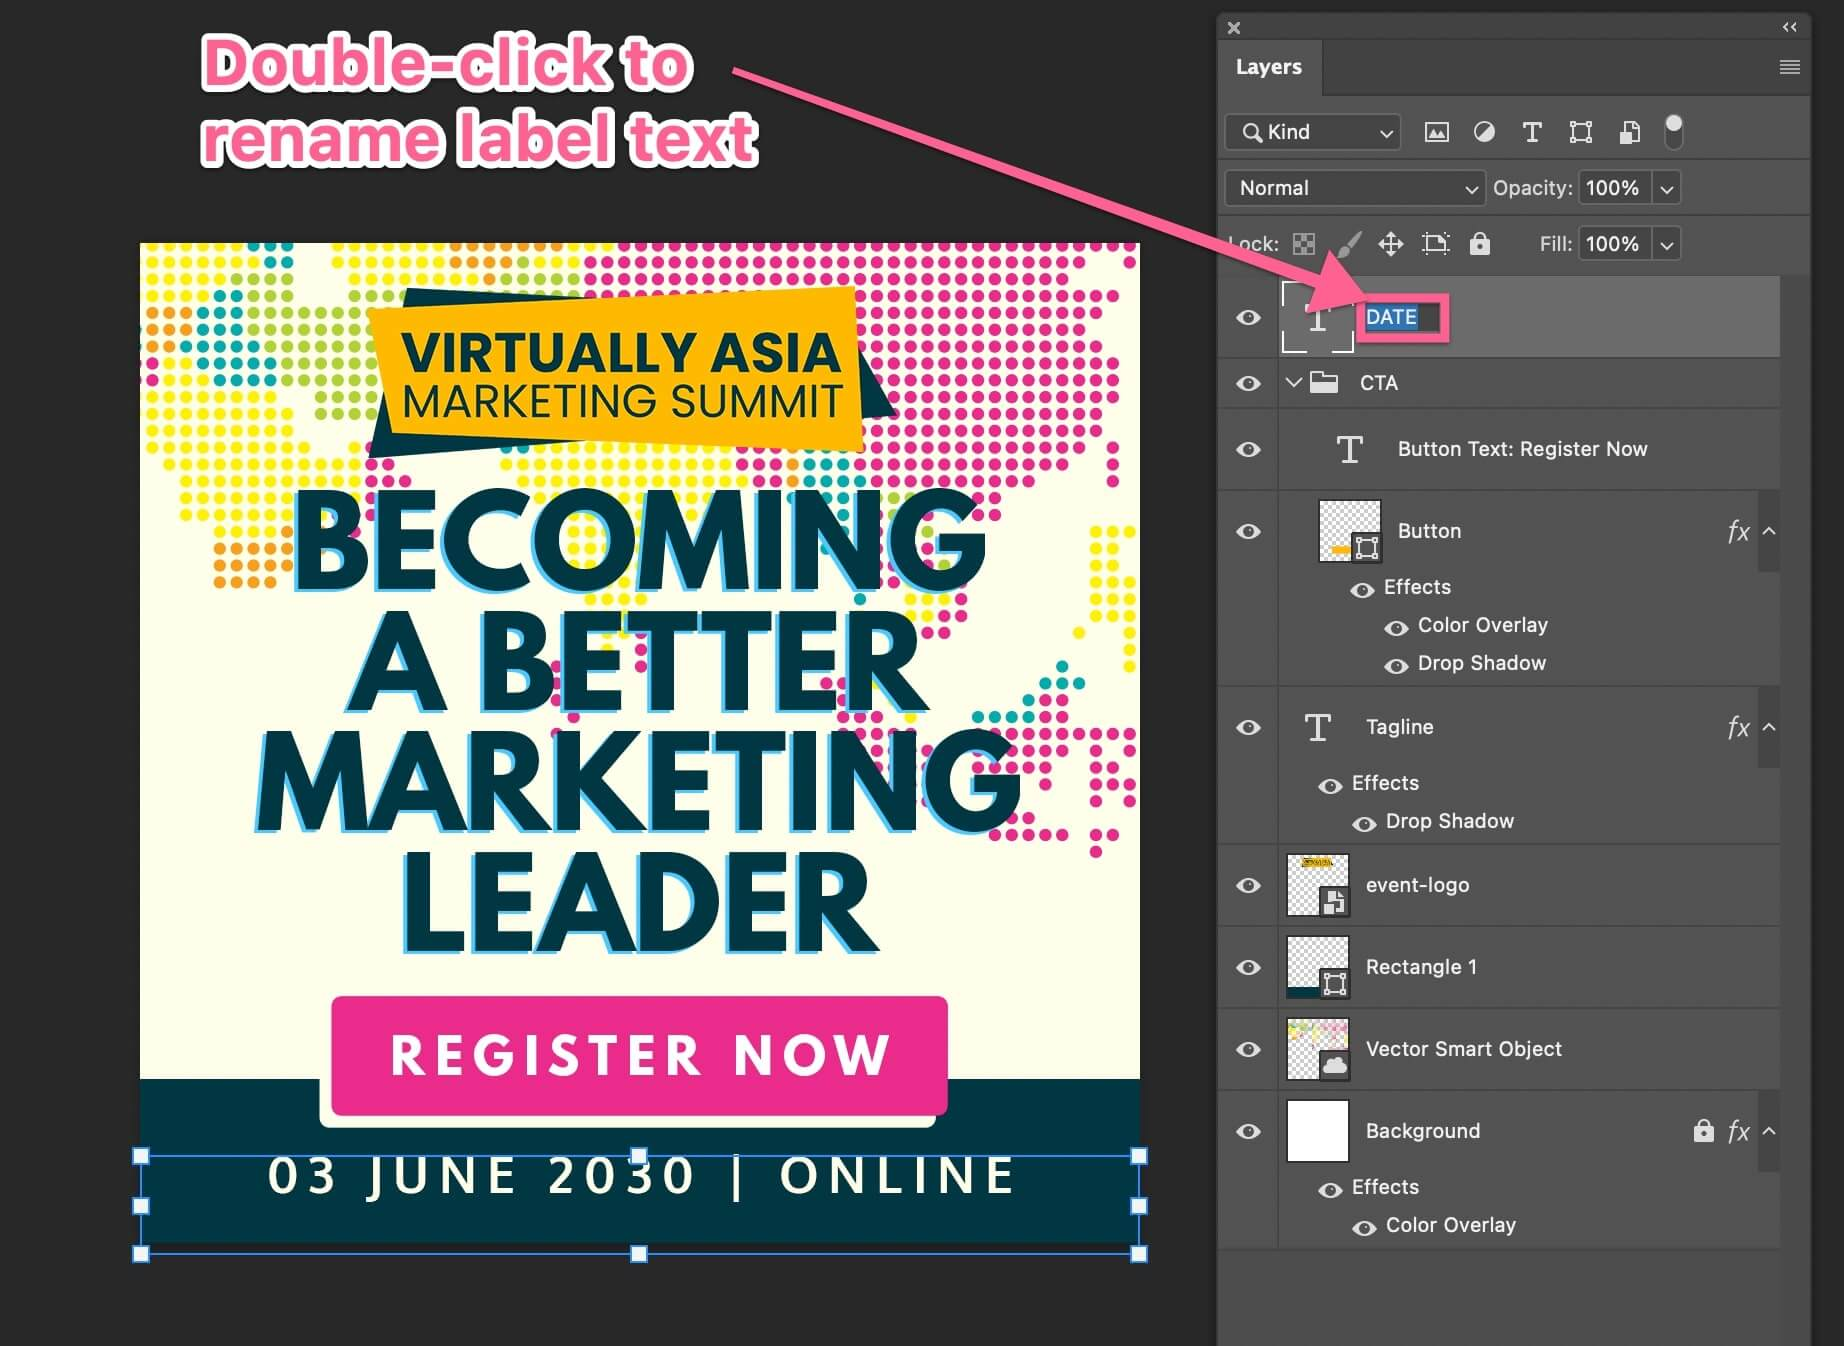 double-click layer to change label or name in Photoshop